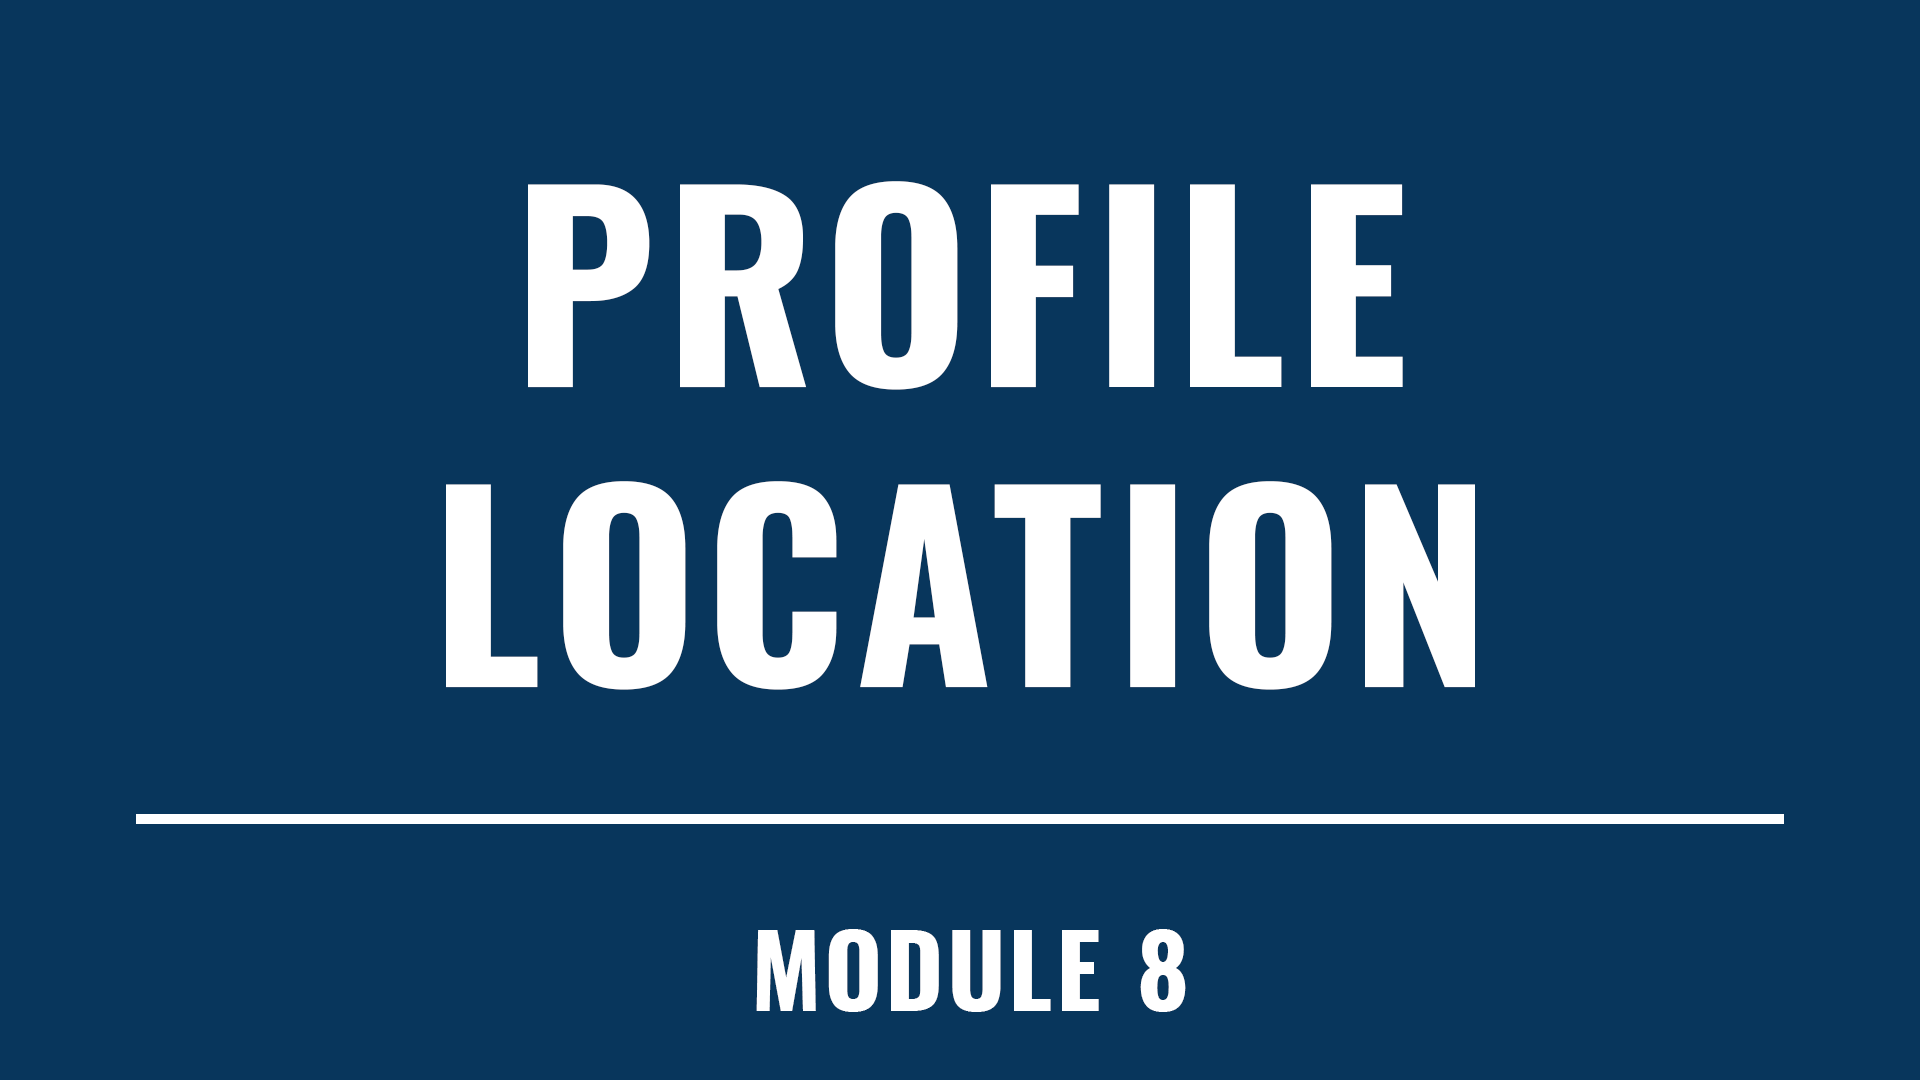 Profile Location